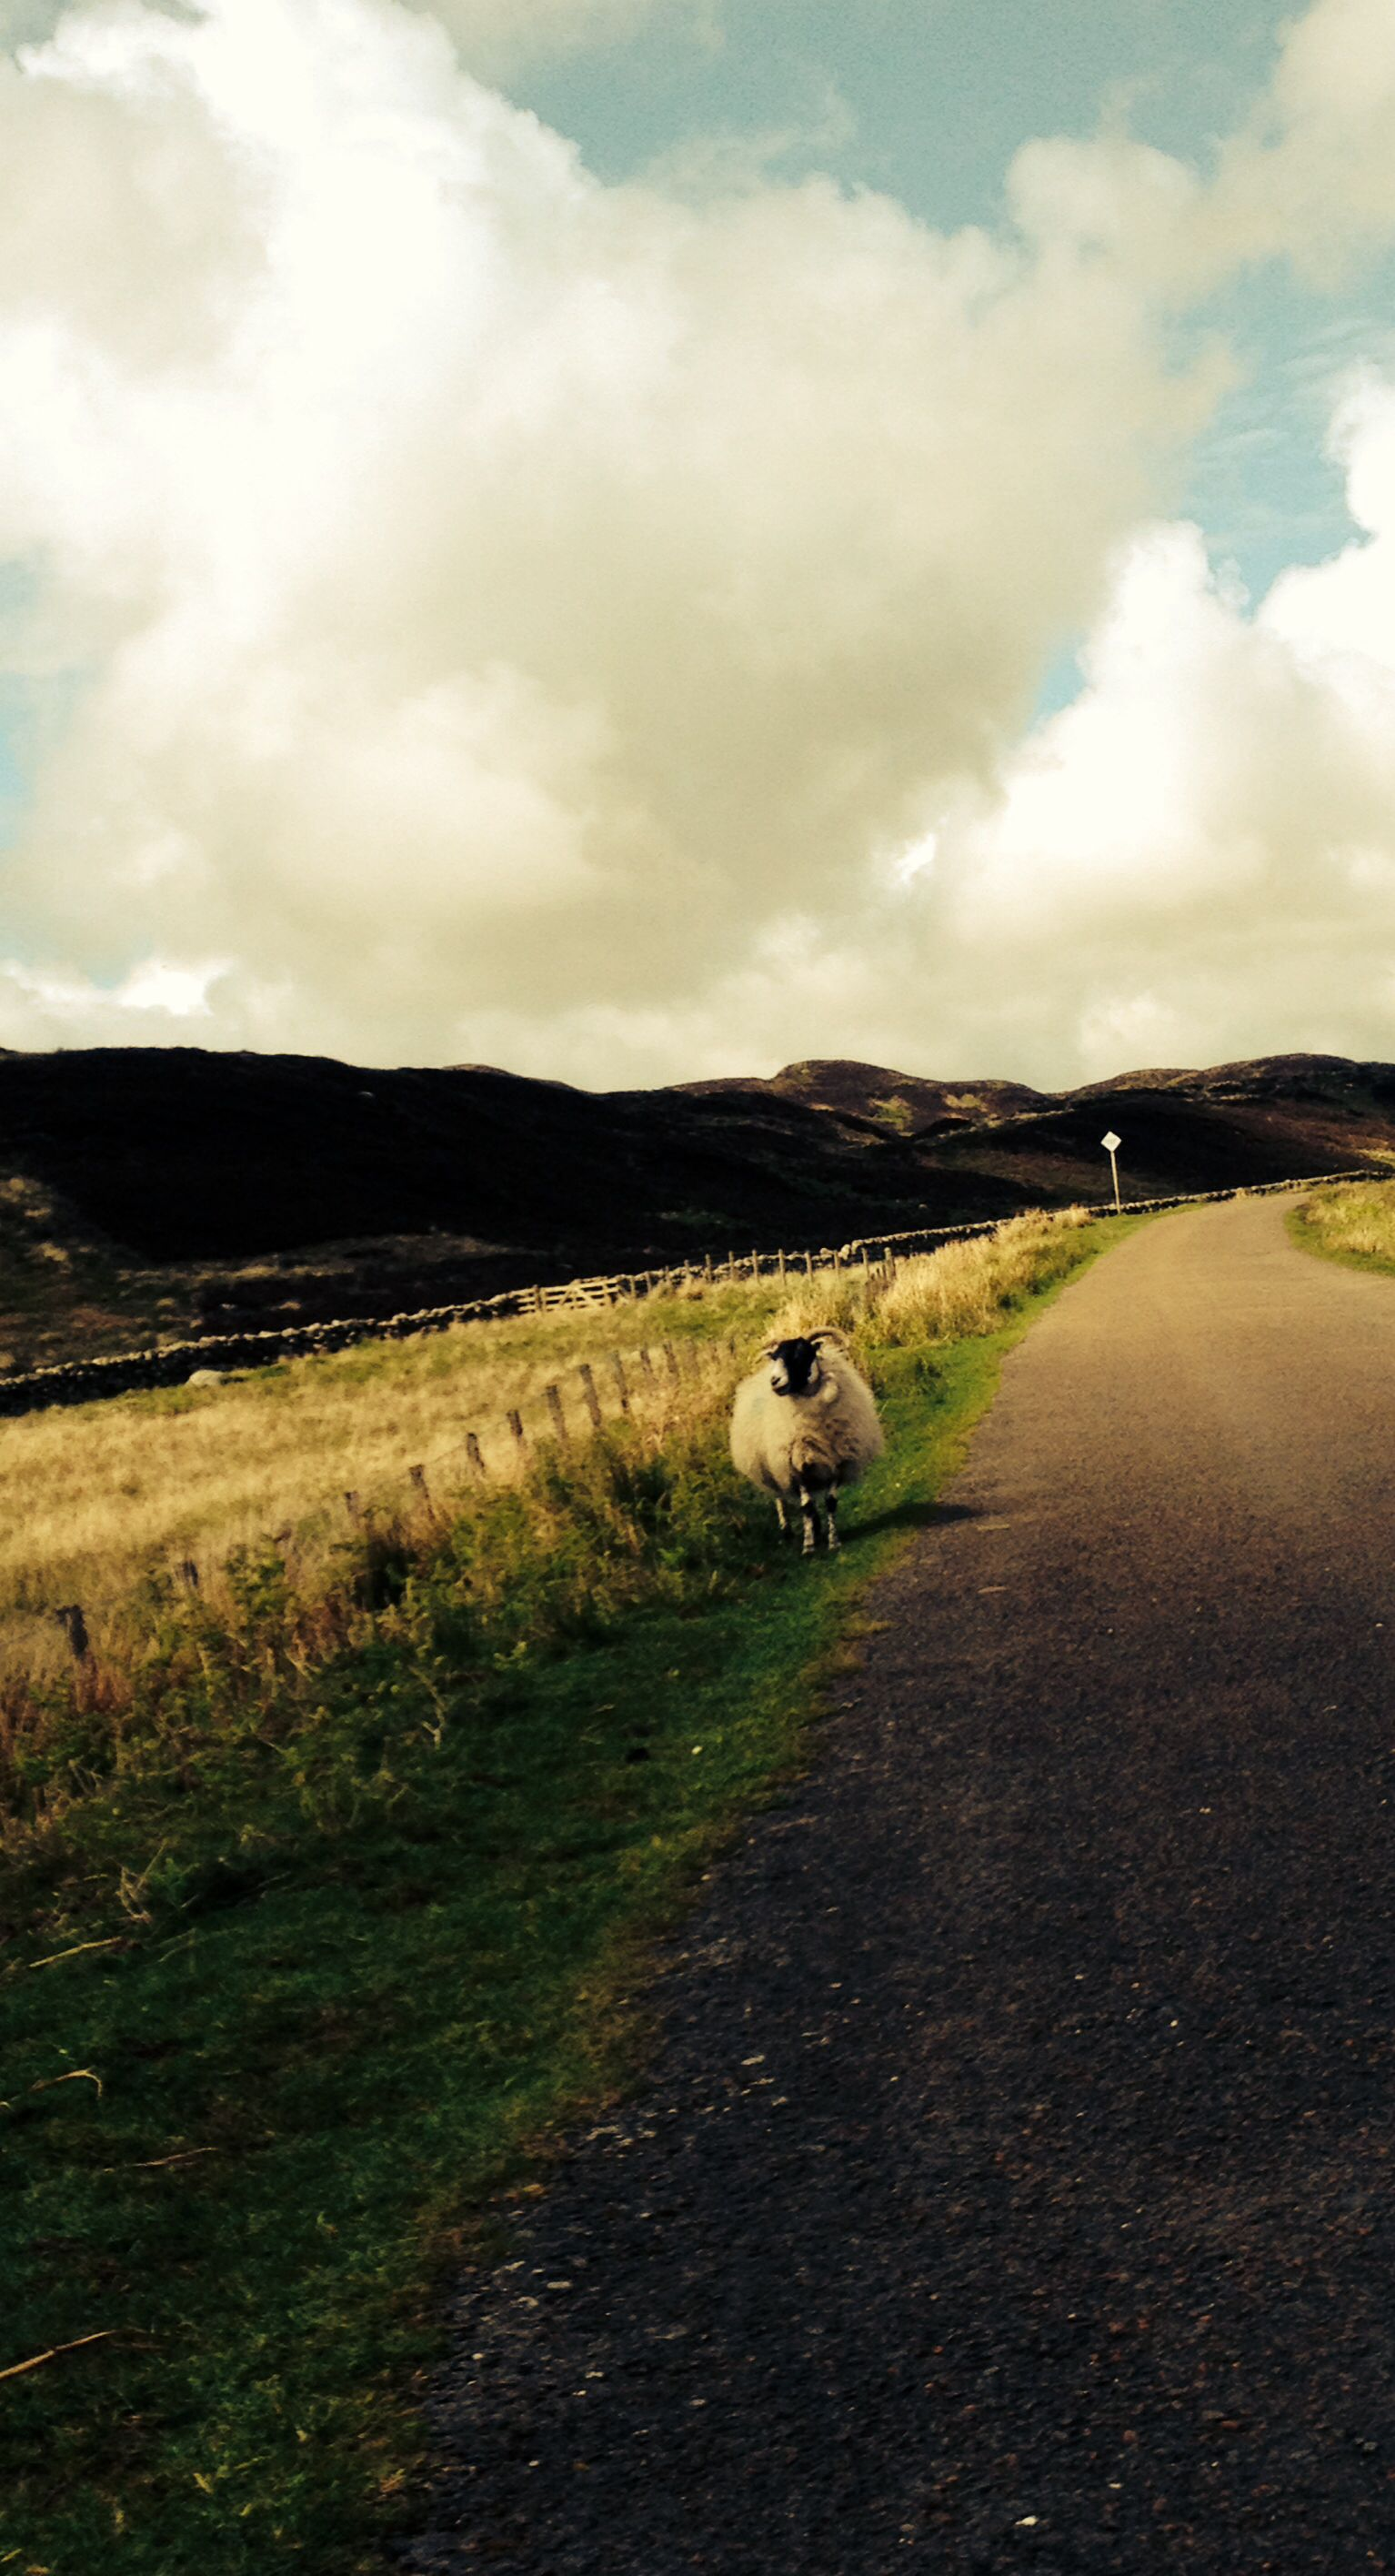 Lonely wandering sheep, Dumfries and Galloway